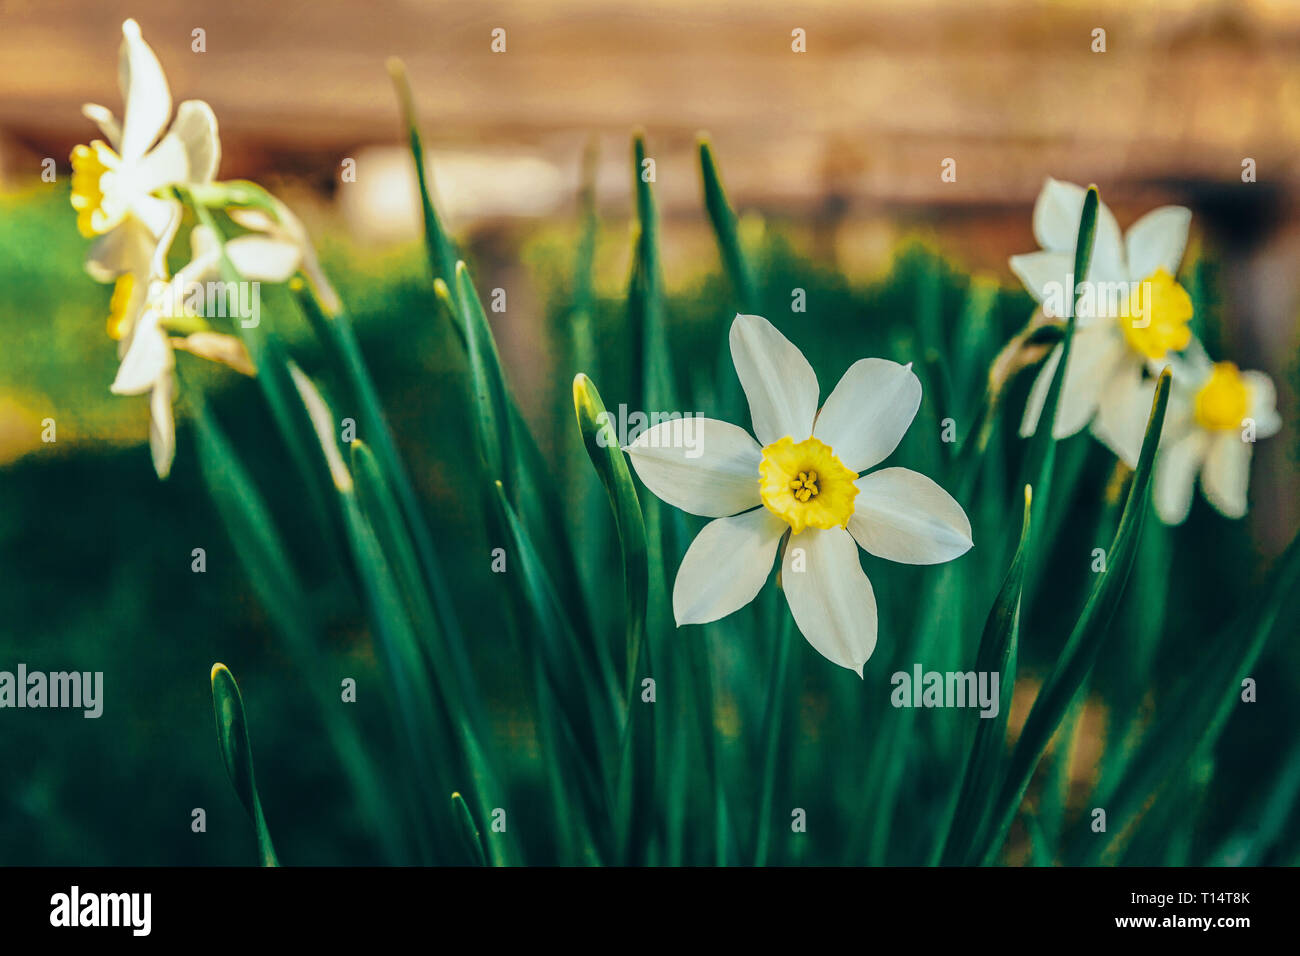 Blooming Narcissus daffodils Flower bed jonquils with blurred